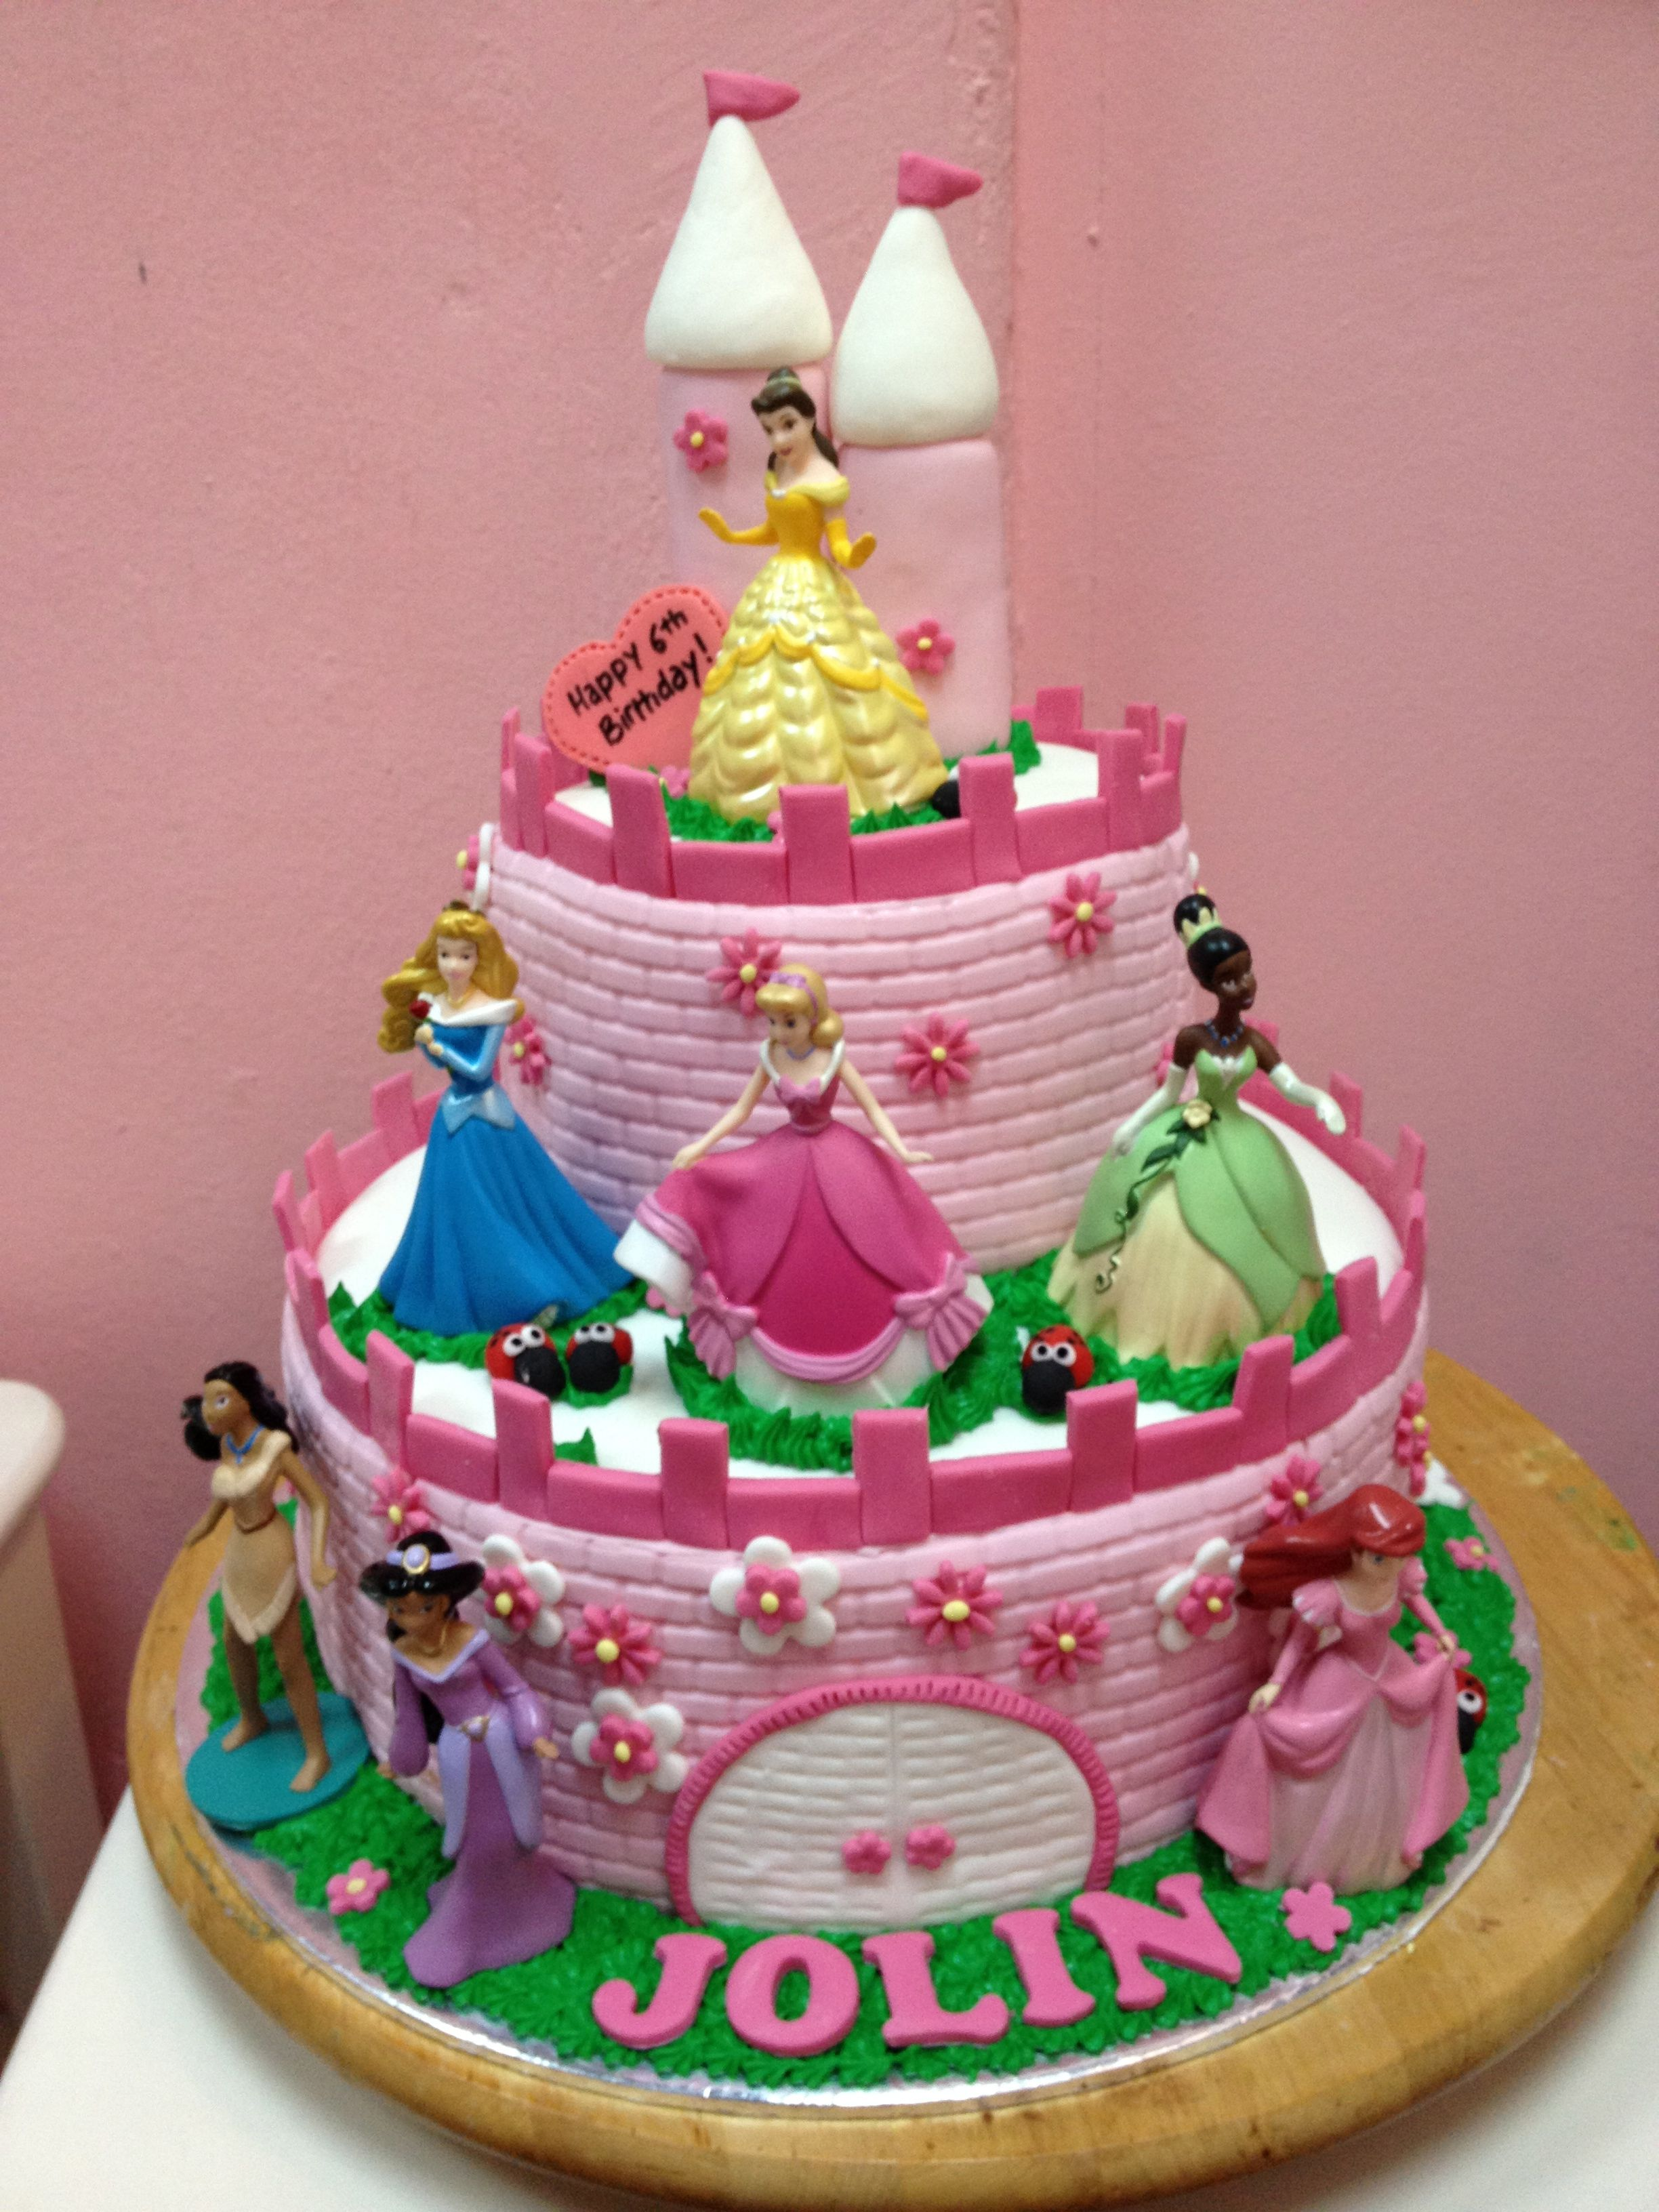 2 Tier Princess Castle Cake With Disney Toppers Provided